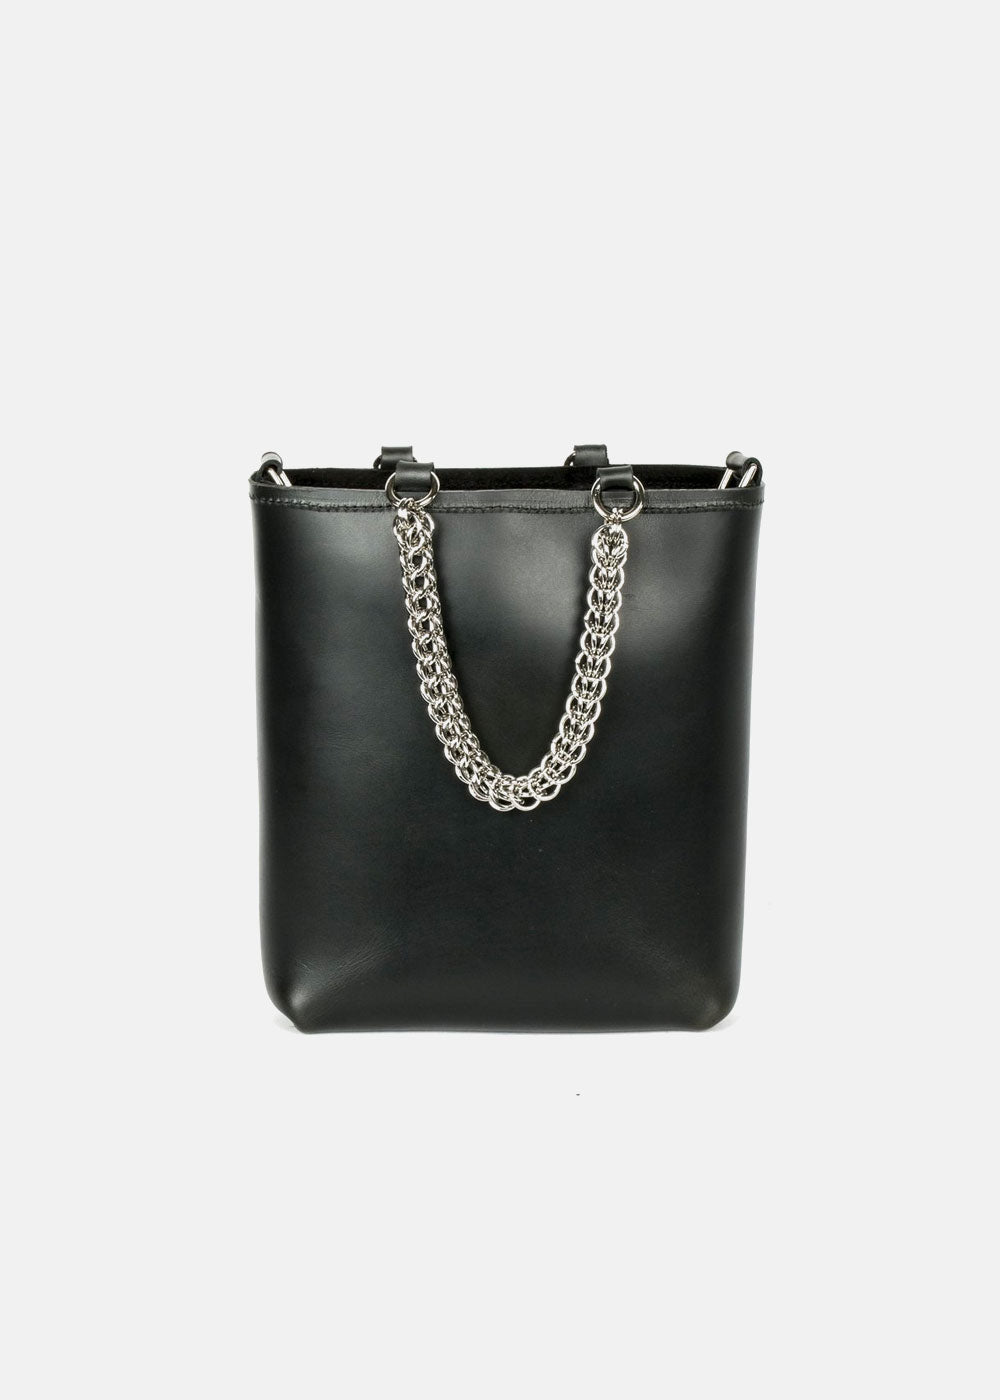 Sonya Lee Quarter Yuliana Bag — Shop sustainable fashion and slow fashion at New Classics Studios